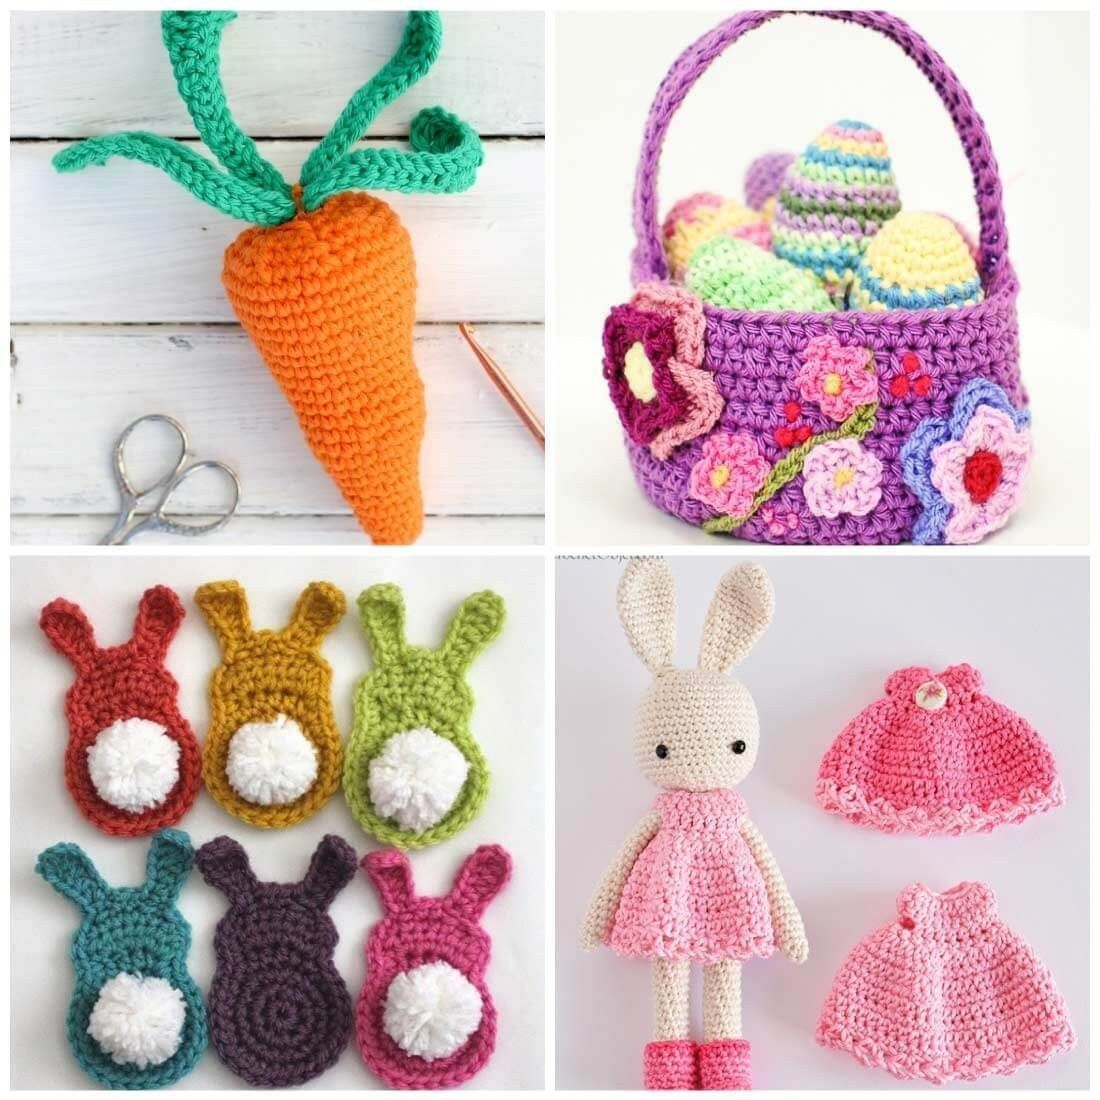 Easter Crochet Patterns 16 Free Crochet Patterns For Easter Easter Pinterest Easter #eastercrochetpatterns Easter Crochet Patterns 16 Free Crochet Patterns For Easter Easter Pinterest Easter #eastercrochetpatterns Easter Crochet Patterns 16 Free Crochet Patterns For Easter Easter Pinterest Easter #eastercrochetpatterns Easter Crochet Patterns 16 Free Crochet Patterns For Easter Easter Pinterest Easter #blumenbeetanlegen Easter Crochet Patterns 16 Free Crochet Patterns For Easter Easter Pinterest #eastercrochetpatterns